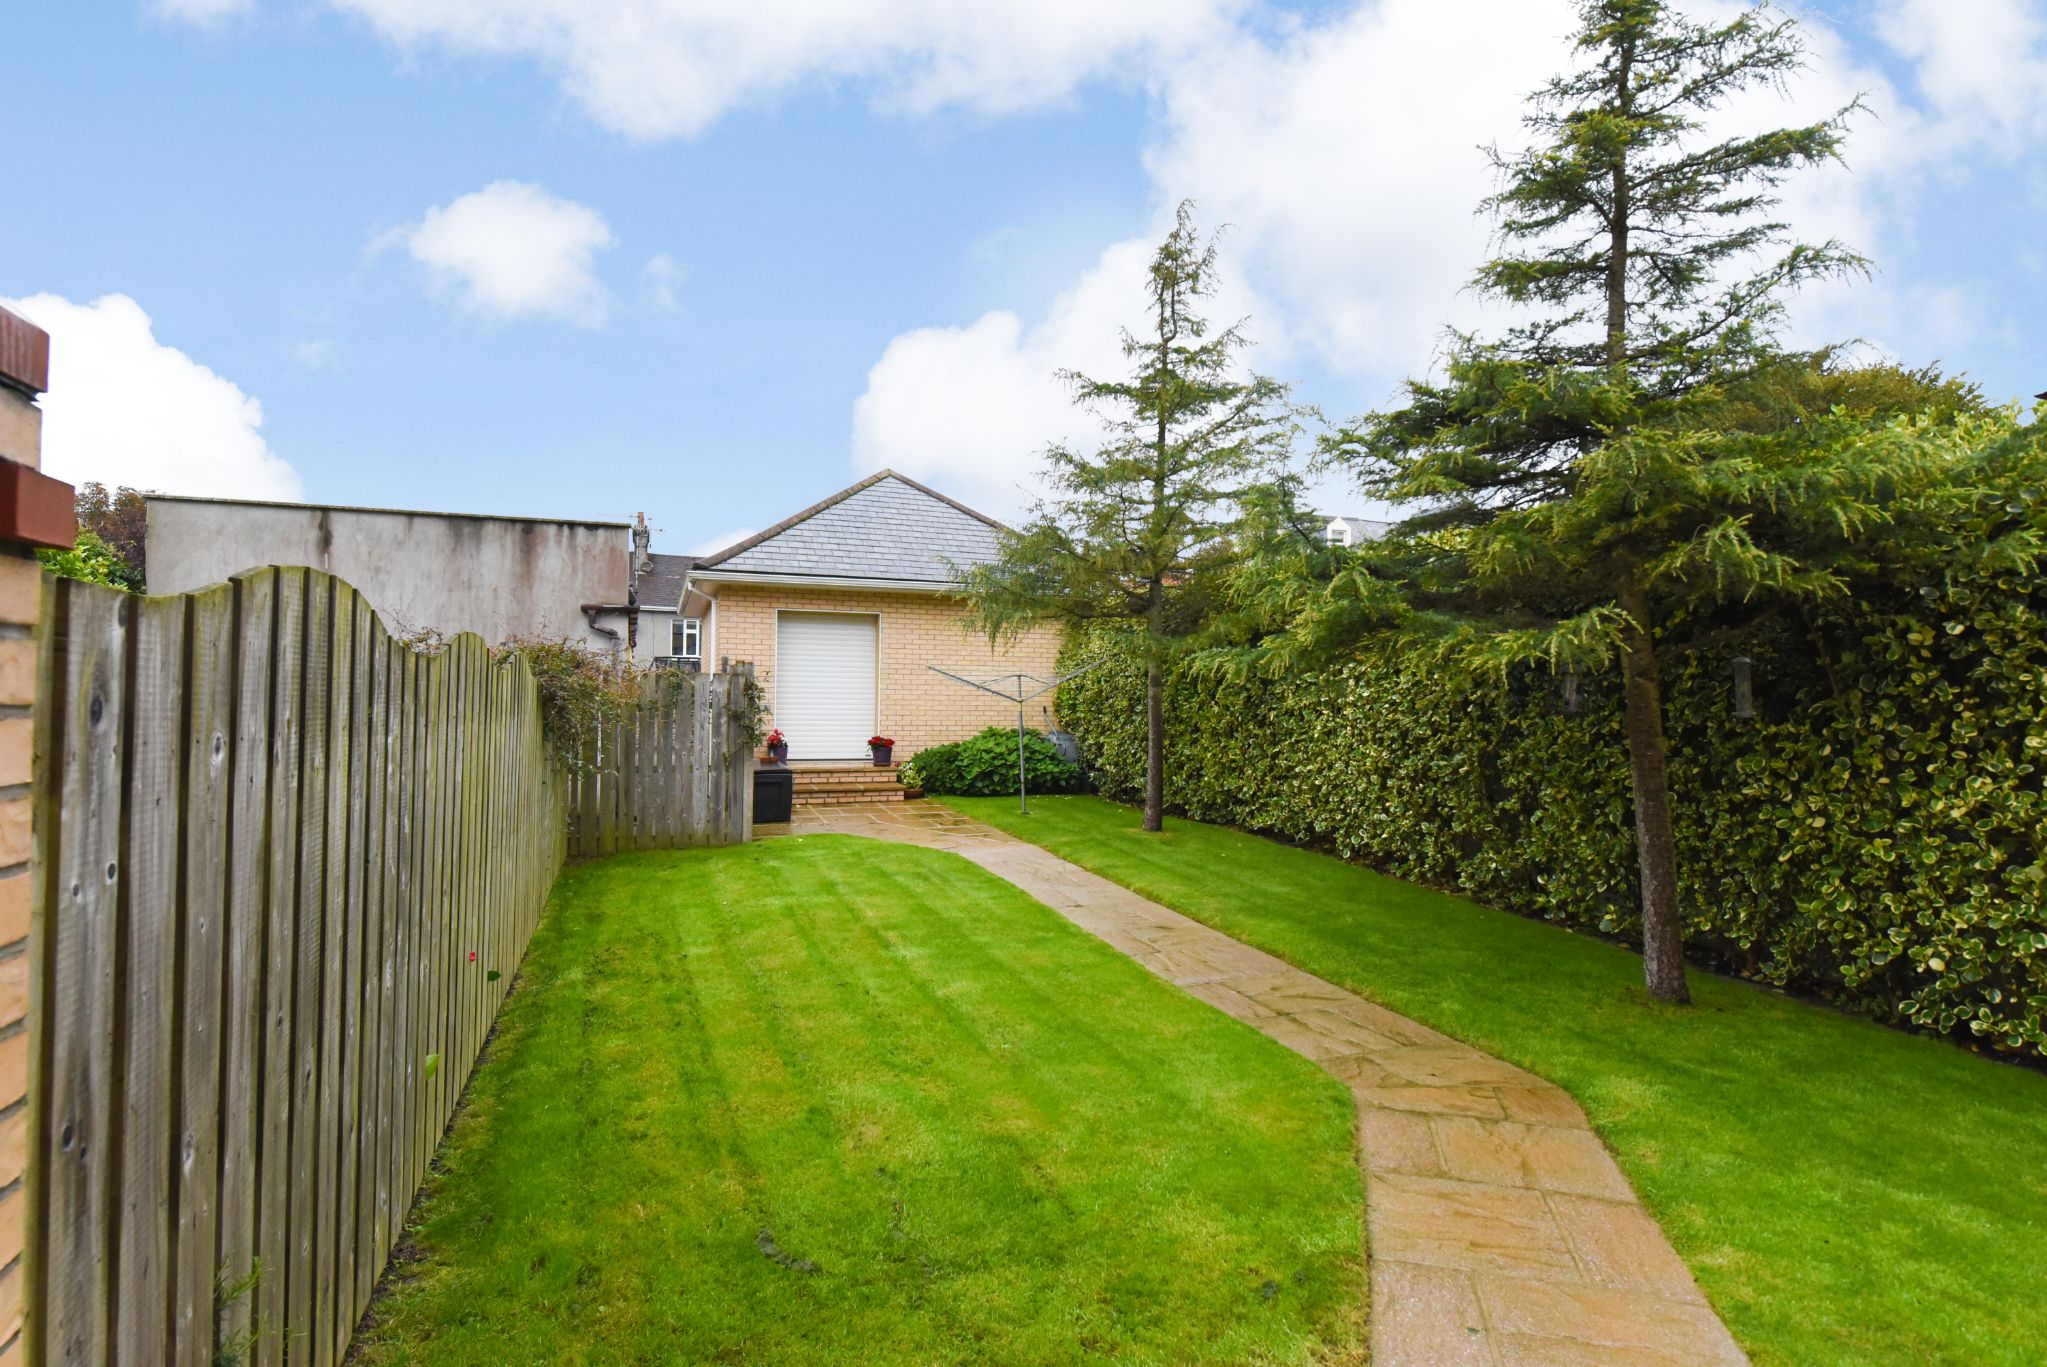 4 bedroom end terraced house For Sale in Douglas - Property photograph